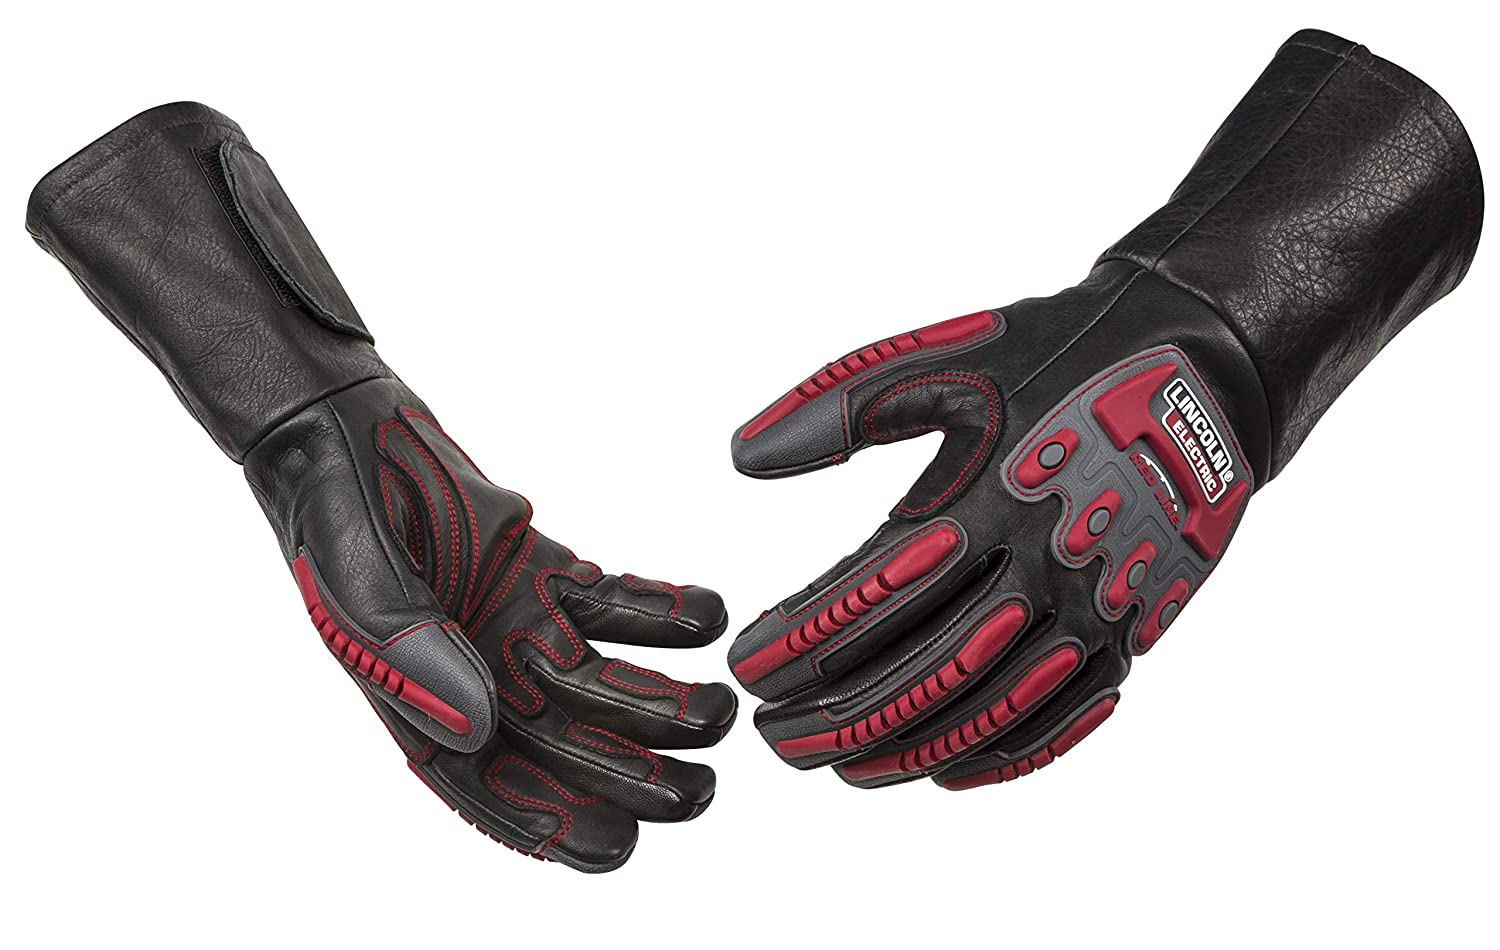 Lincoln Electric Roll Cage Welding/Rigging Gloves | Impact Resistant | Black Grain Leather | K3109-XL